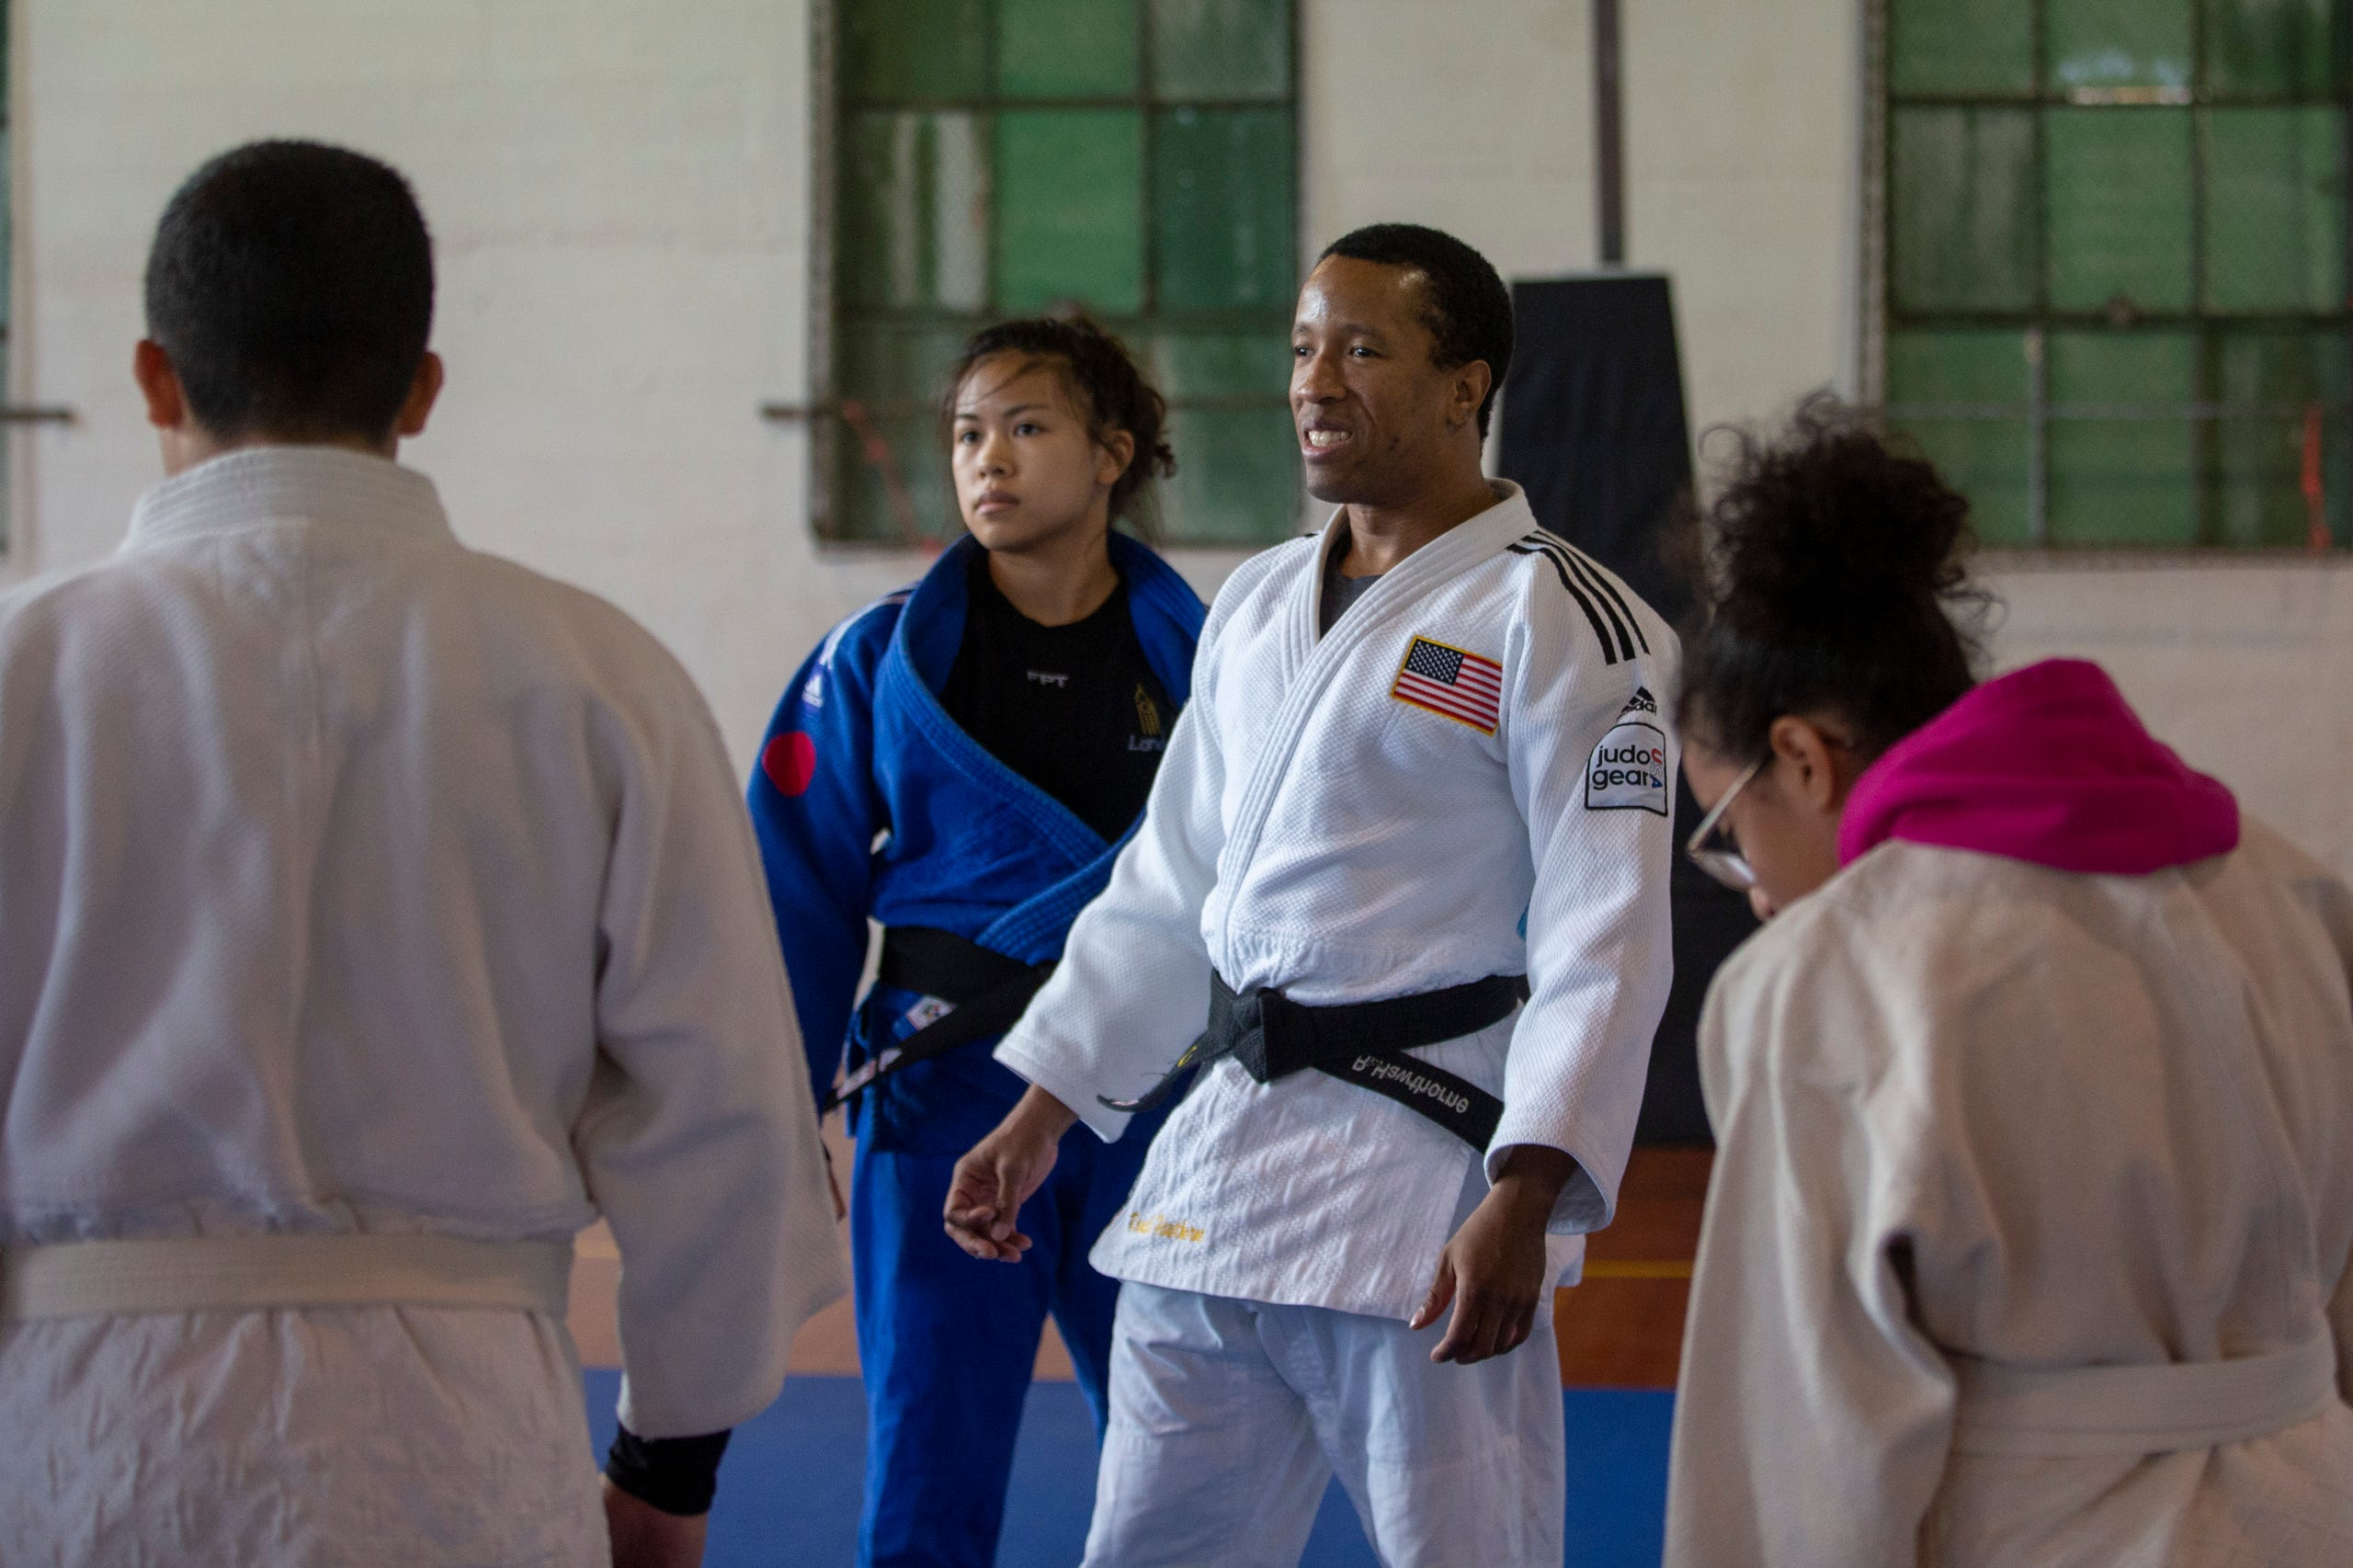 "Ron Hawthorne, a Judo Paralympian and Liana Mutia, a Judo World Champion, teach students judo at the Oregon School for the Deaf in Salem, Oct. 4, 2019. NWABA, the Northwest Association for Blind Athletes, hosted a ""Paralympic experience"" for students with visual impairments in the state. After the Oregon School for the Blind closed in 2009, many visually impaired students and their families lost access to state-funded resources, like sports programs. The BVIS (Blind Visually Impaired Student) Fund gives programs like NWABA funds to enhance the lives of low vision/blind children across the state."